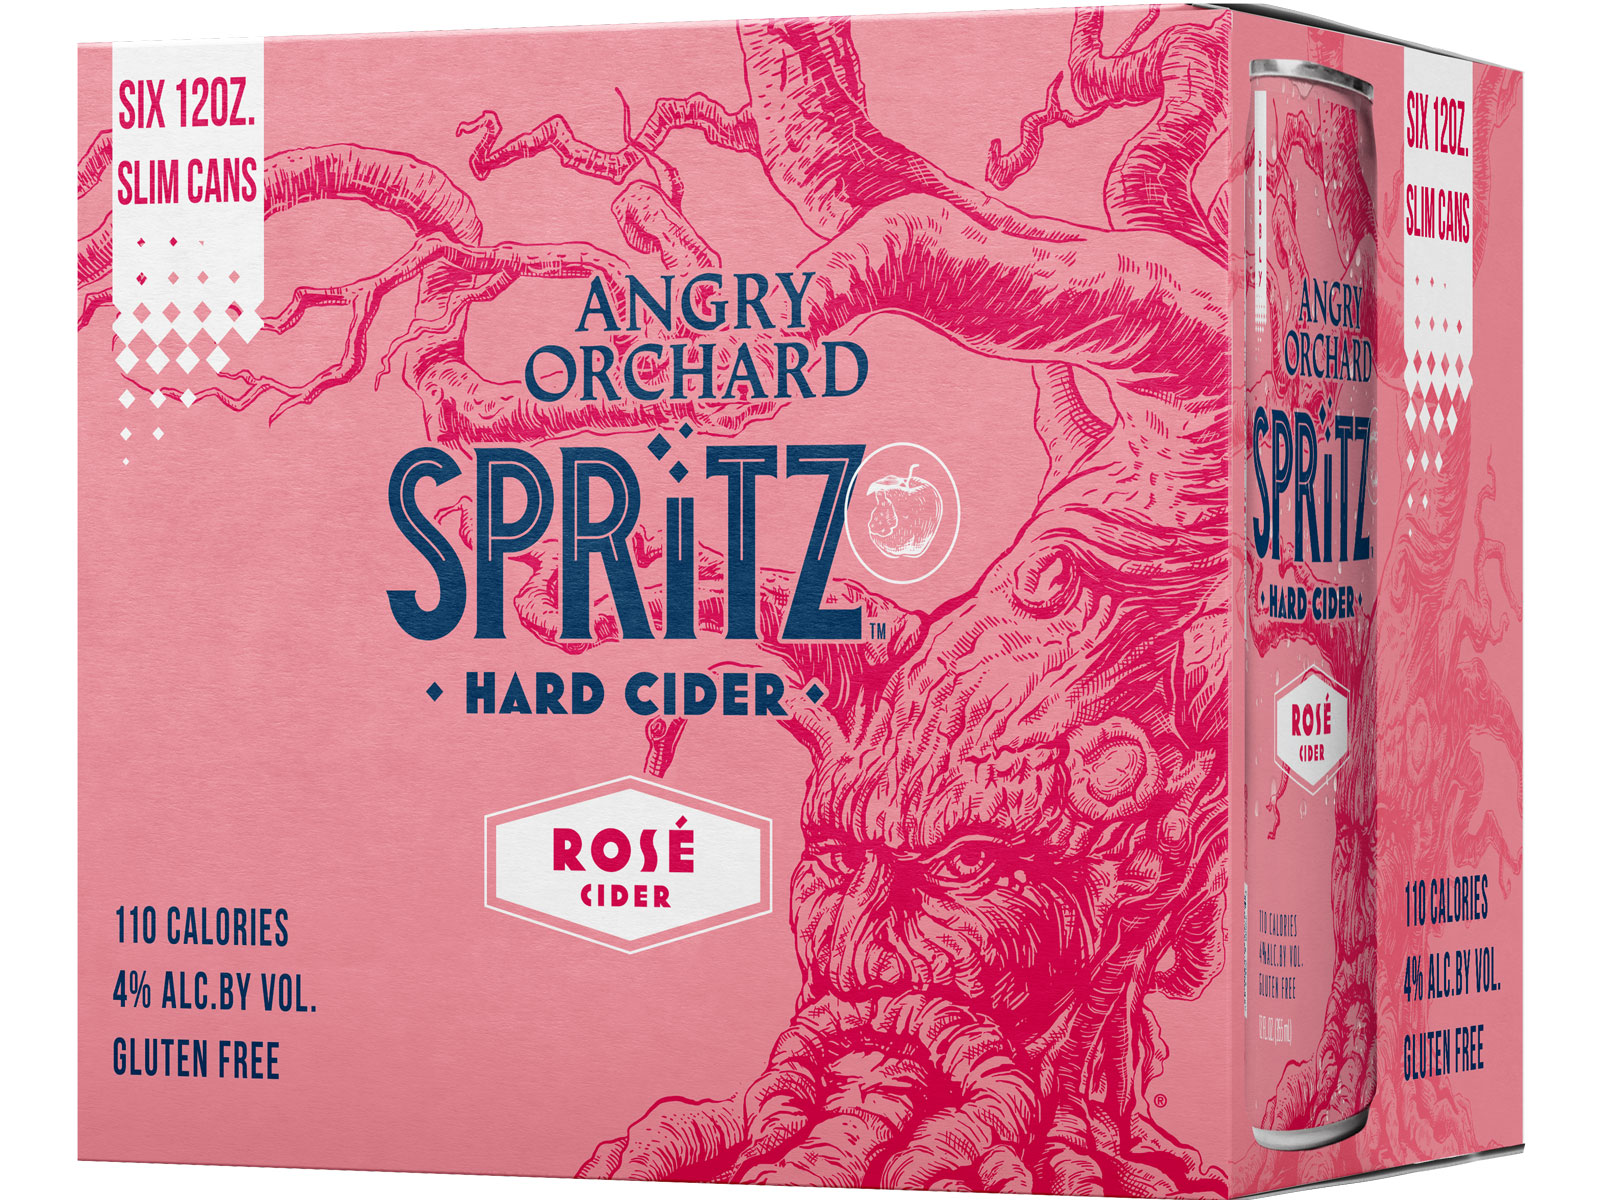 Angry Orchard Spritz Rosé Hard Cider.